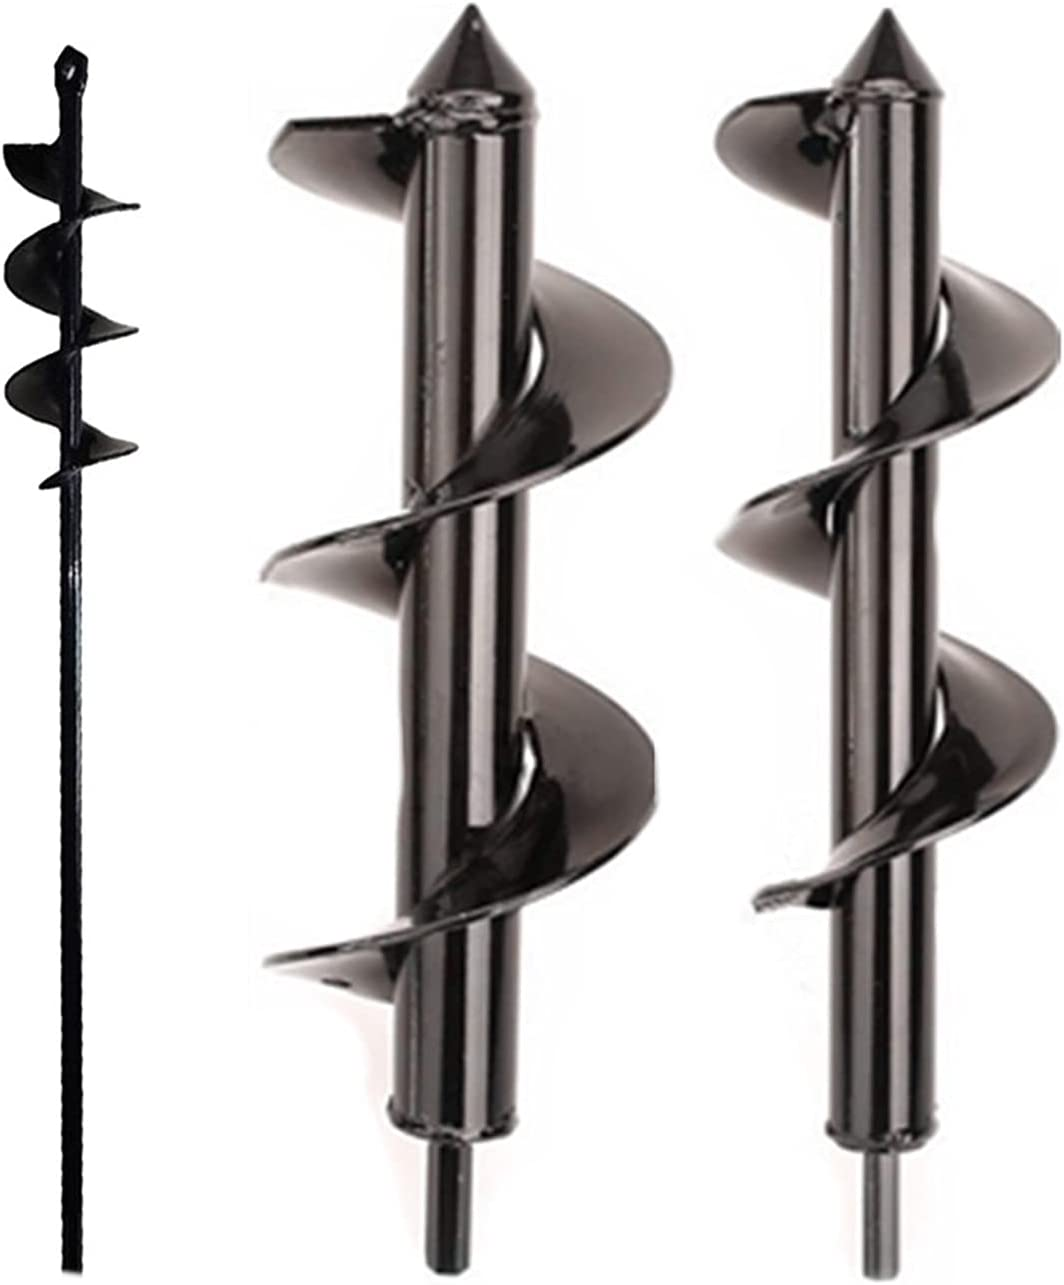 NEW before selling ☆ Planting Auger Spiral Hole Long Beach Mall Drill Bit Garden Bulb Soil Yard Earth